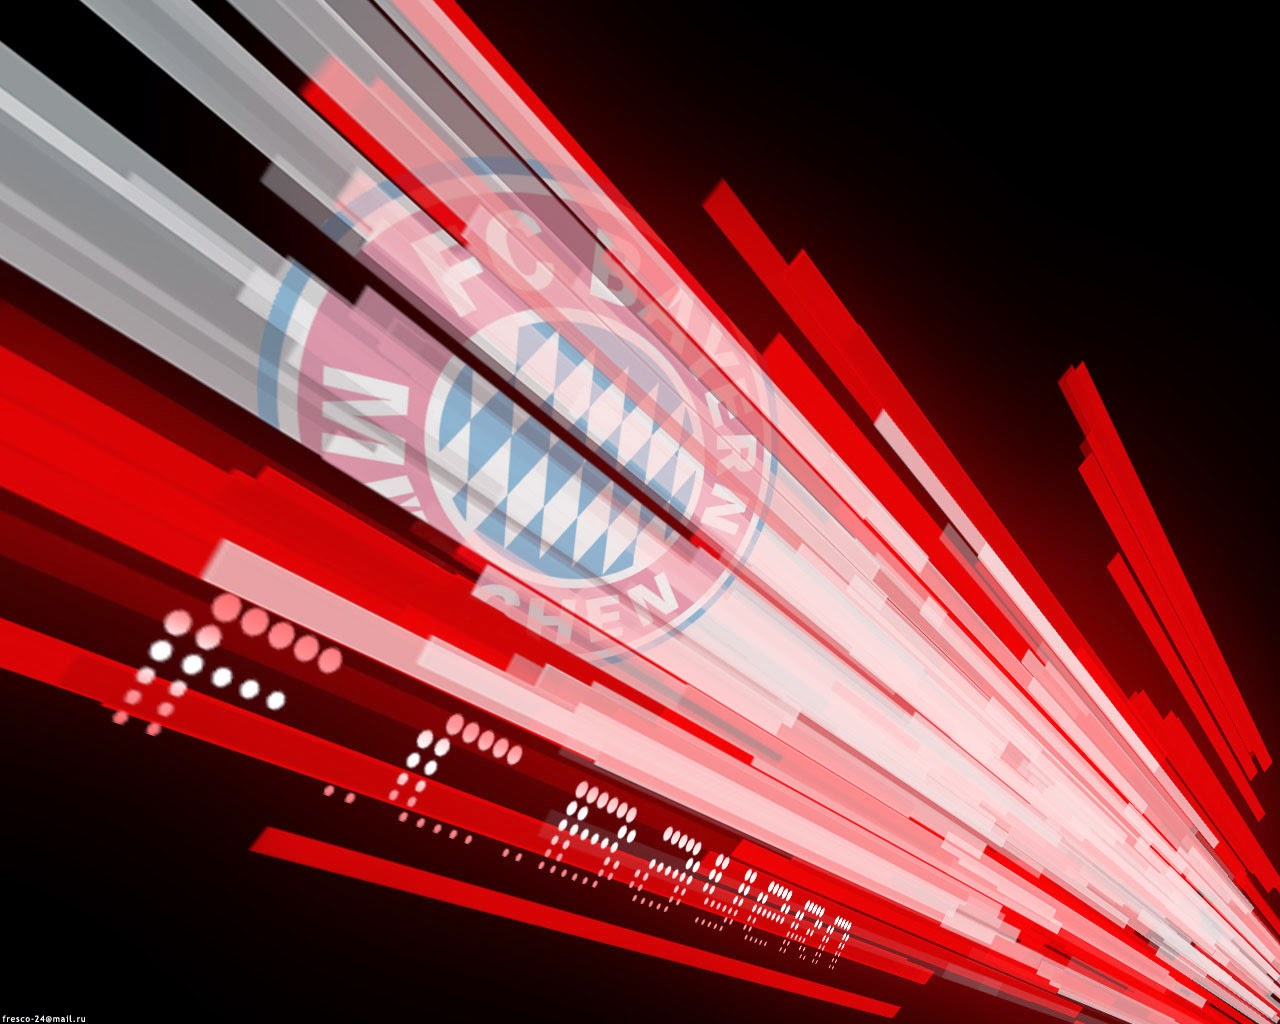 Bayern munchen football club wallpaper football wallpaper hd for Where to get wallpaper